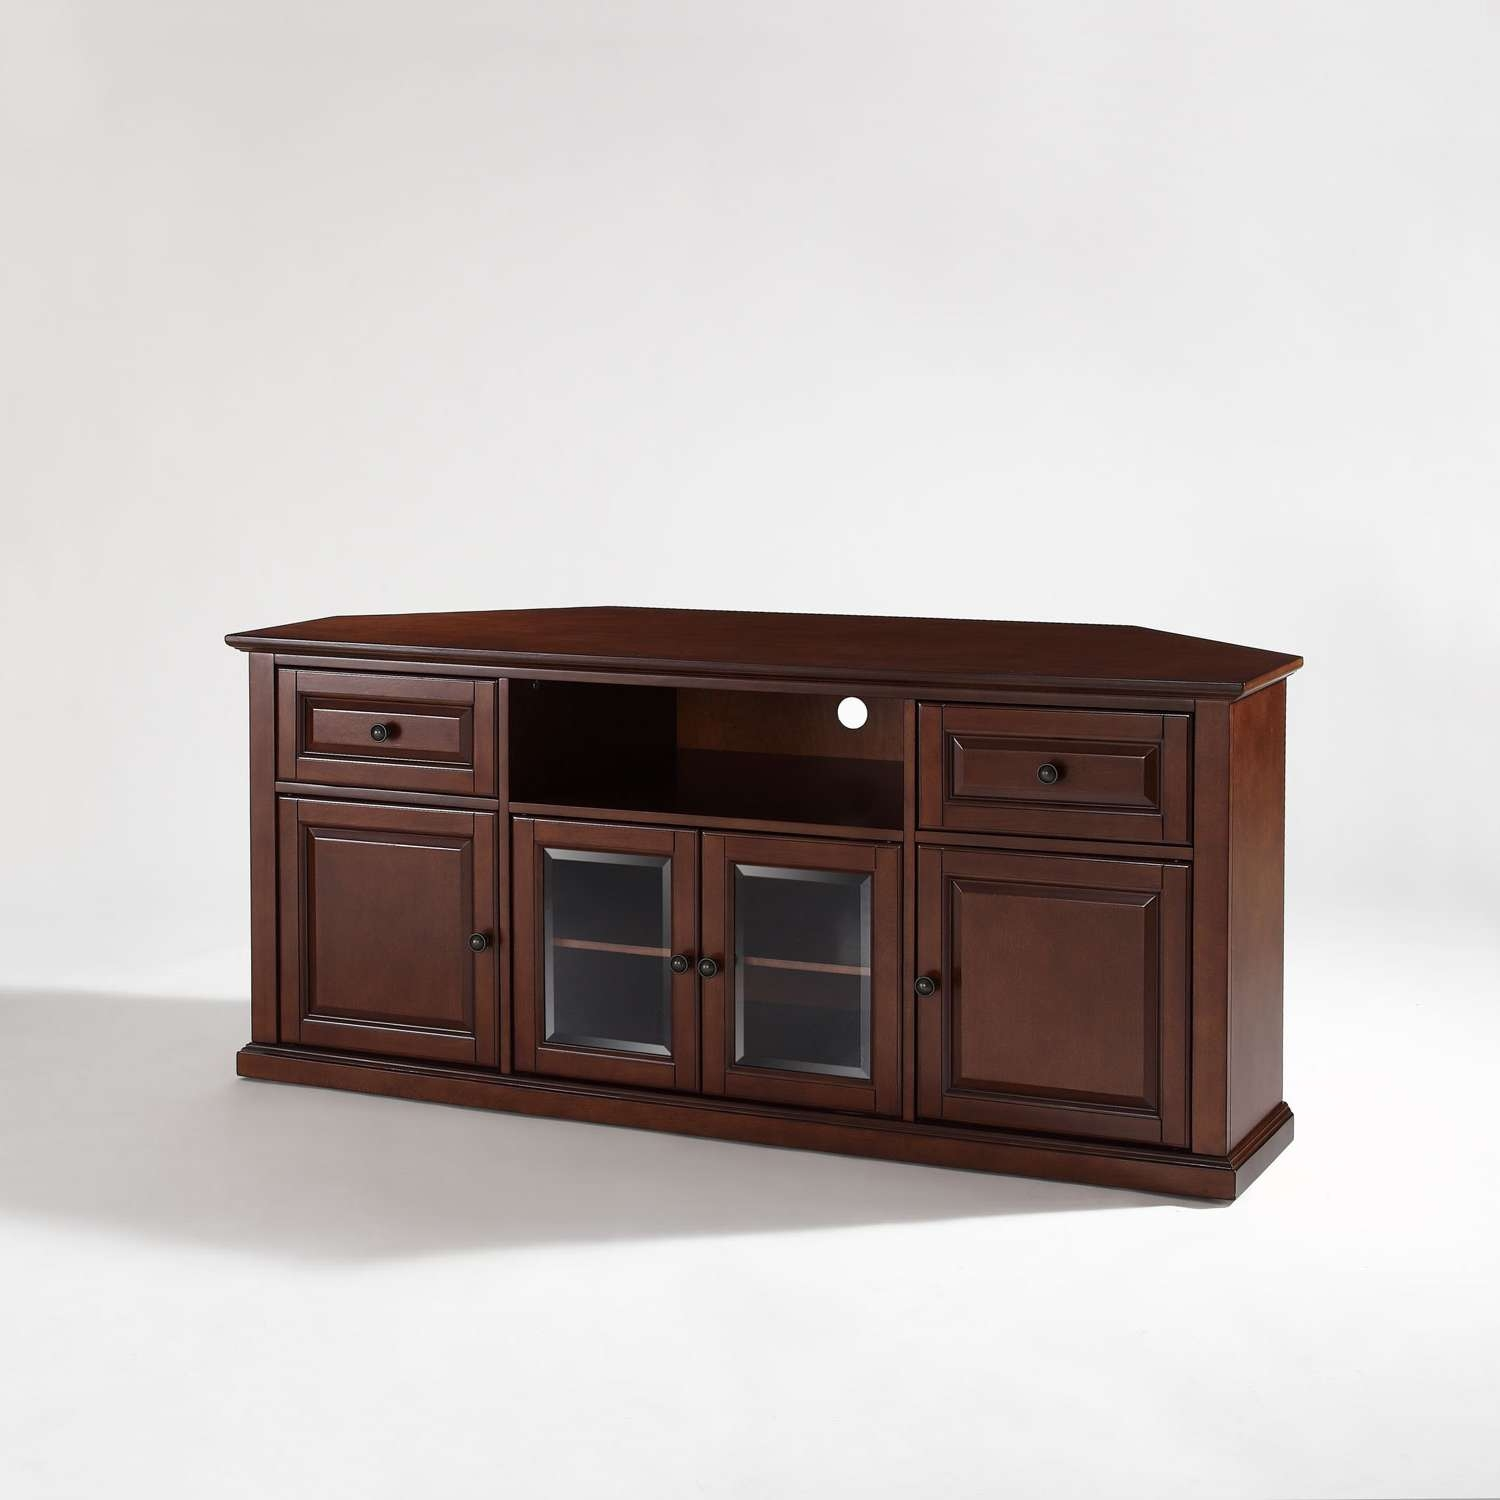 60 Inch Corner Tv Stand In Vintage Mahogany Crosley Furniture Intended For 24 Inch Corner Tv Stands (Gallery 6 of 15)